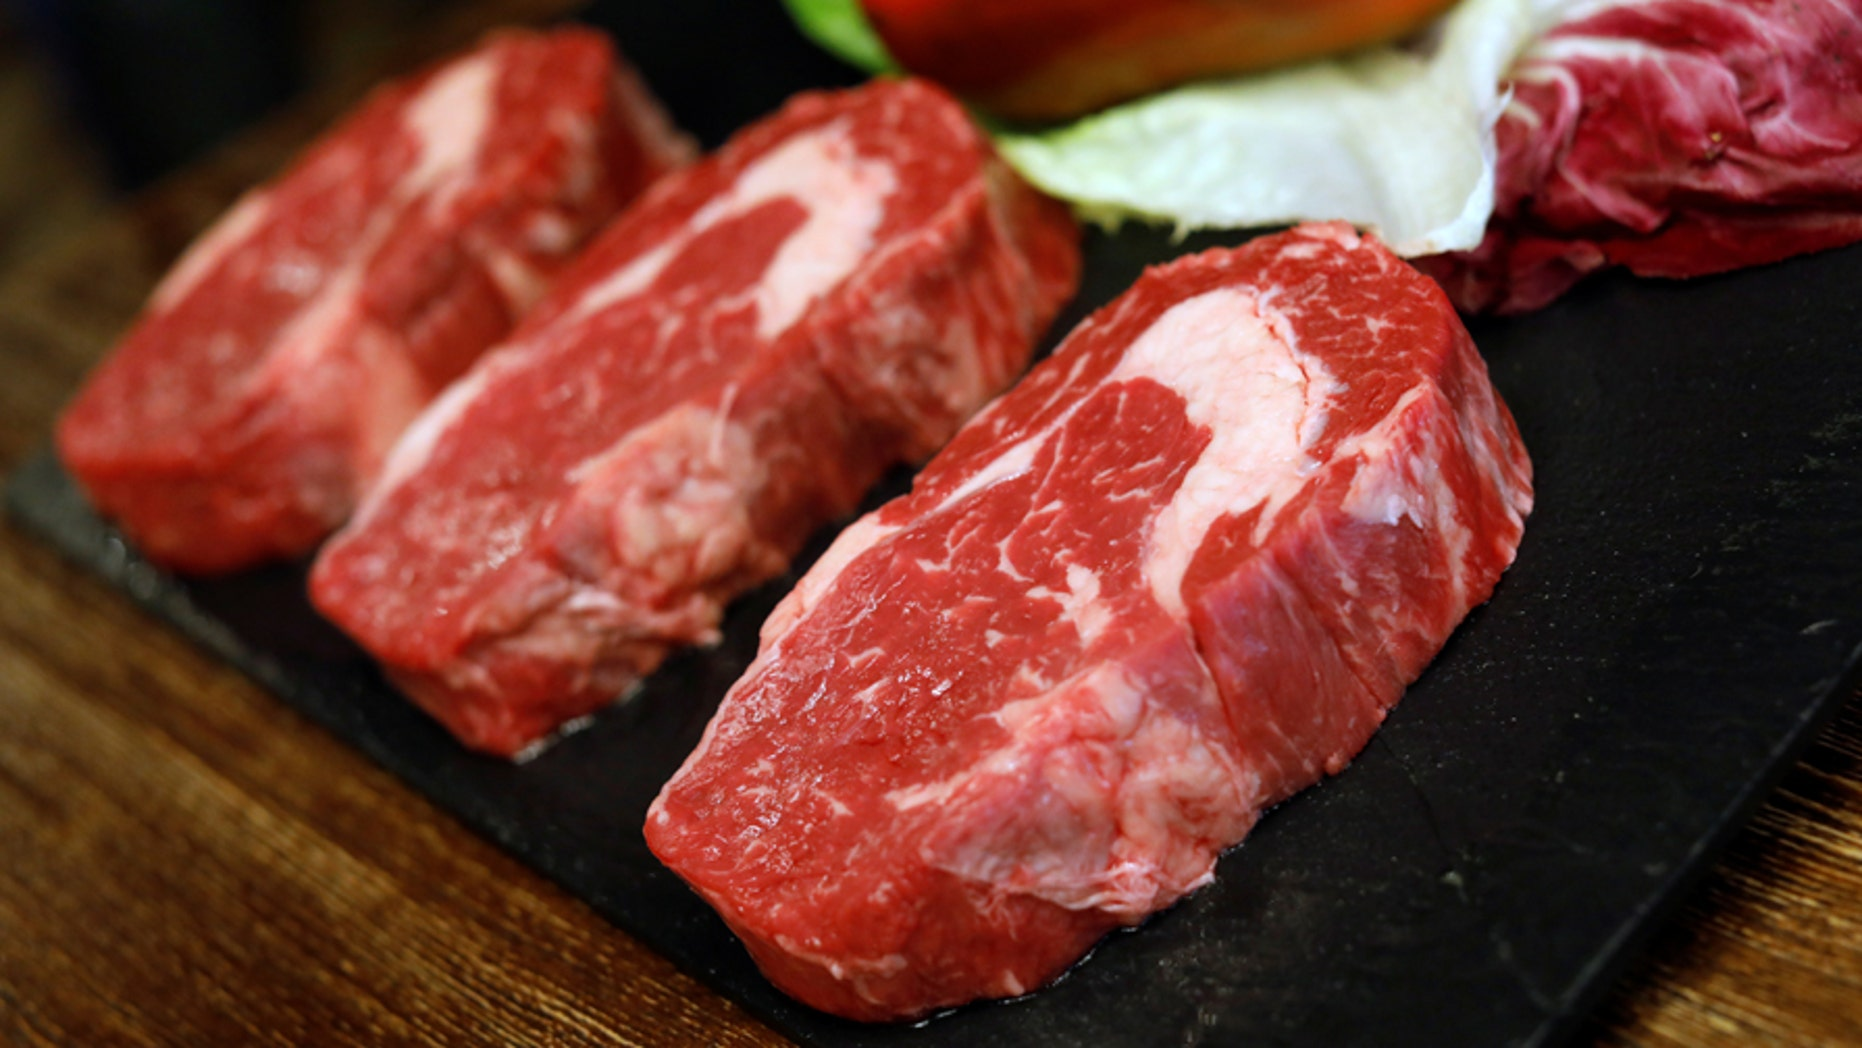 Eating meat promotes toxic masculinity, academic journal says | Fox News